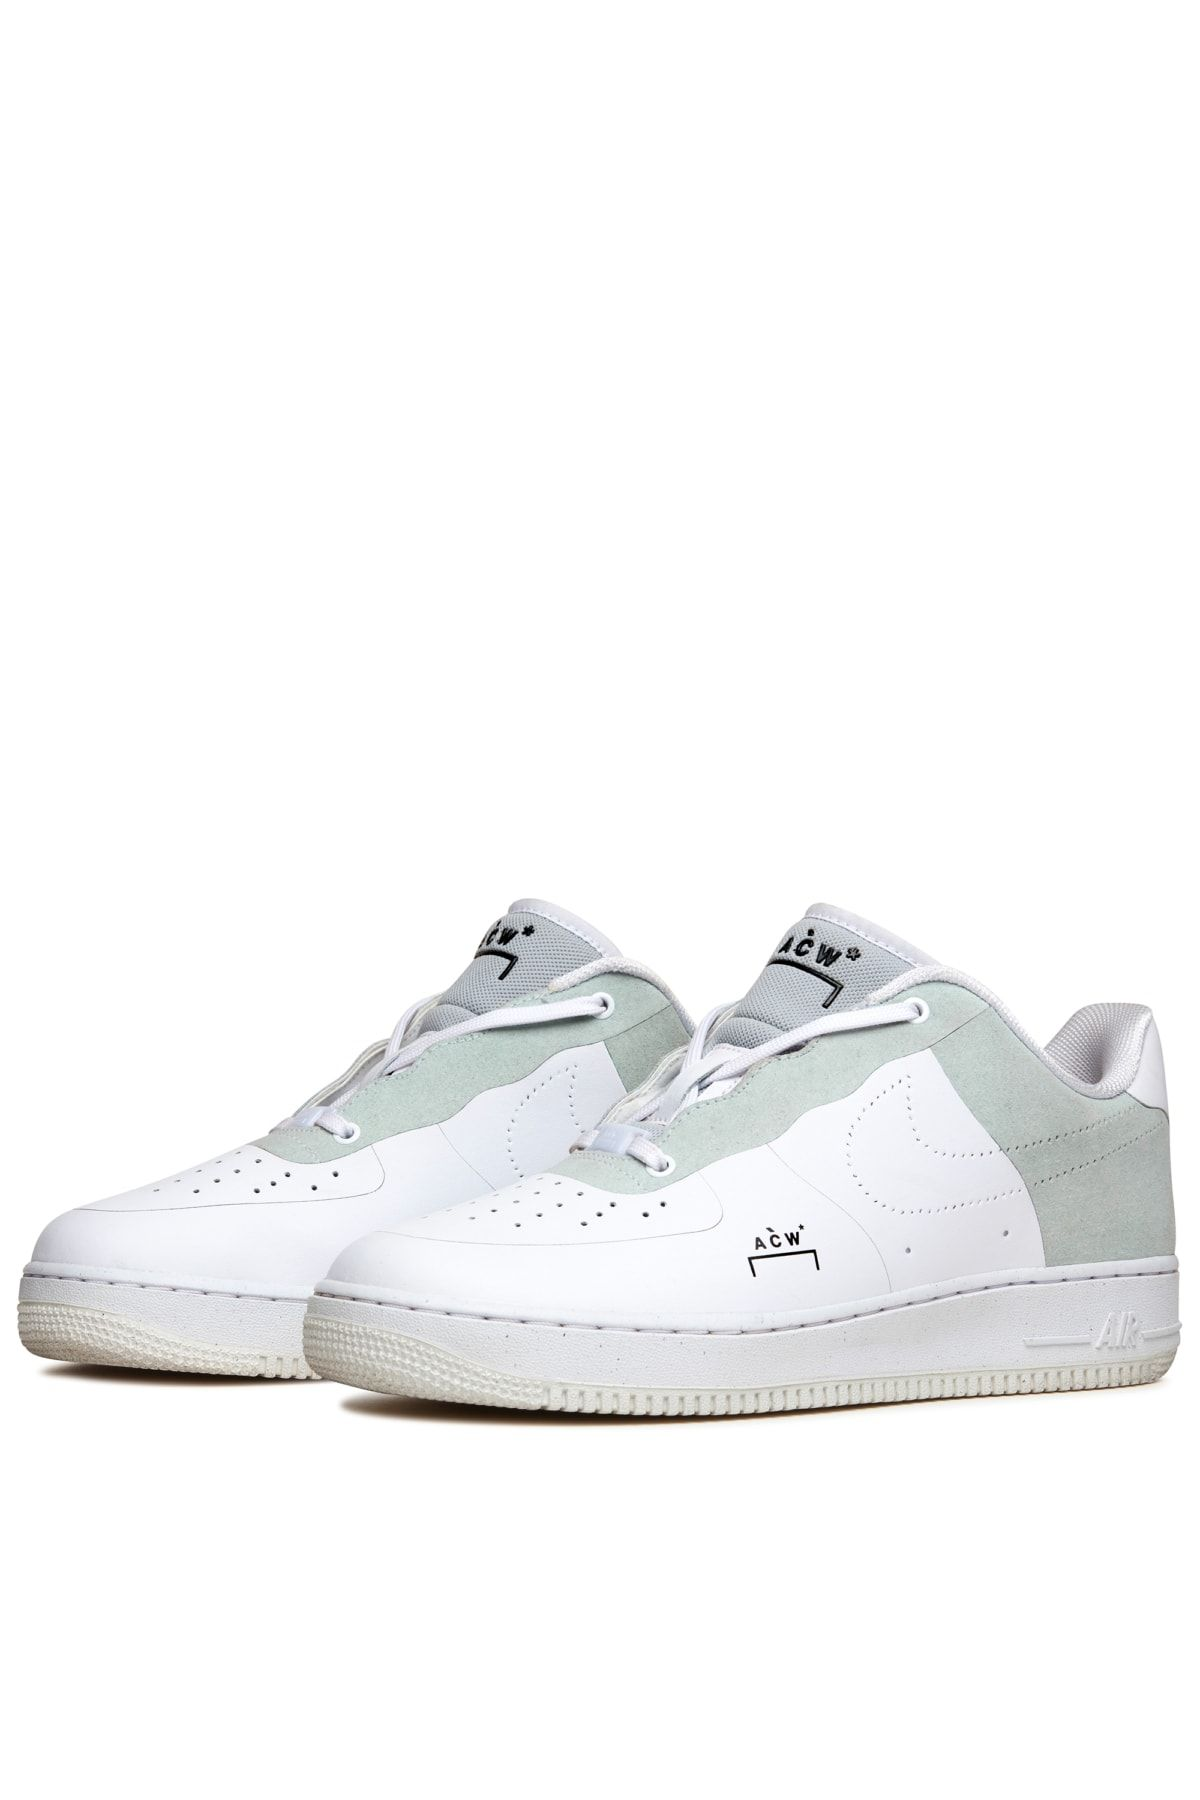 a824739ce21af Nike x ACW  Air Force 1 - Optic White Flyleather - A-COLD-WALL